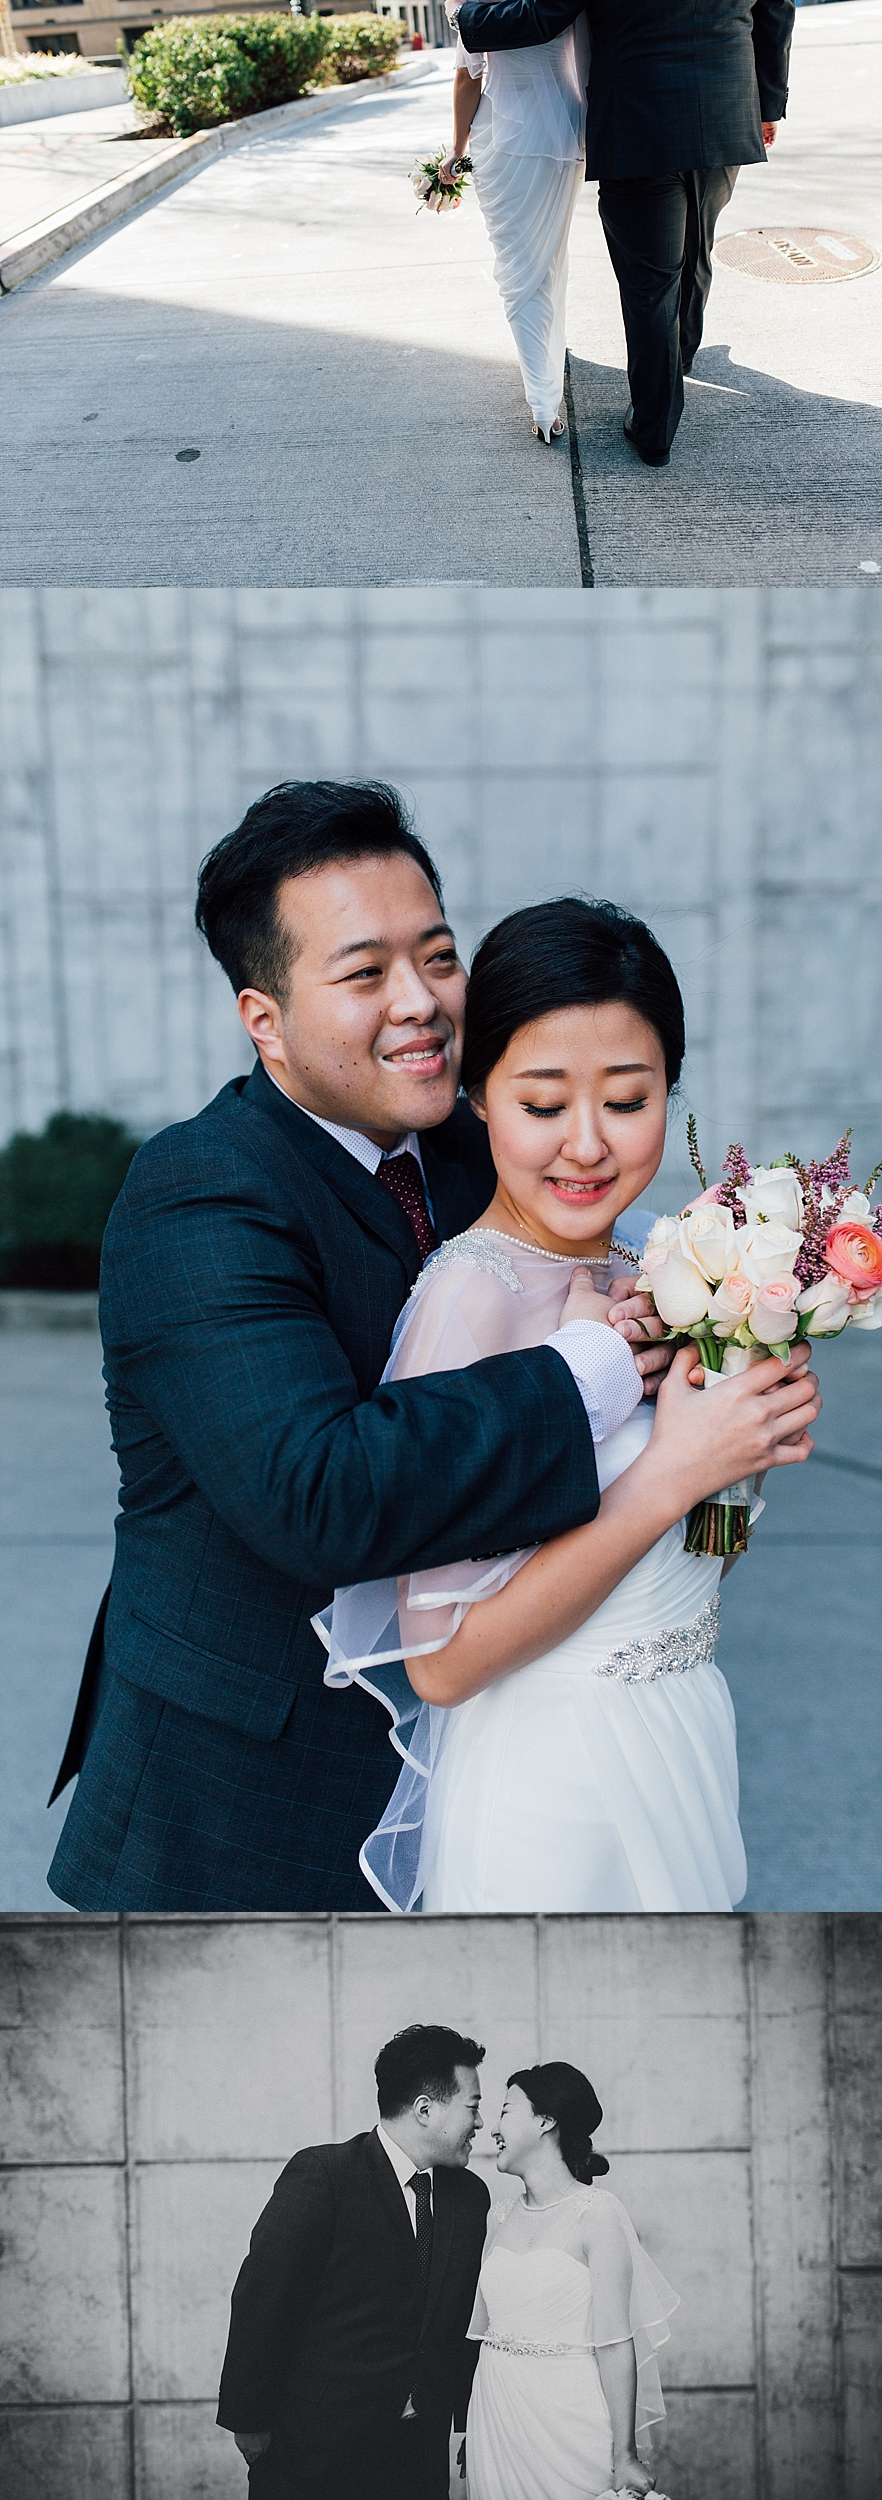 Seattle Courthouse Wedding Photographer PNW elopement Photography - Annie & Alan - Ashley Vos Photography-7.jpg